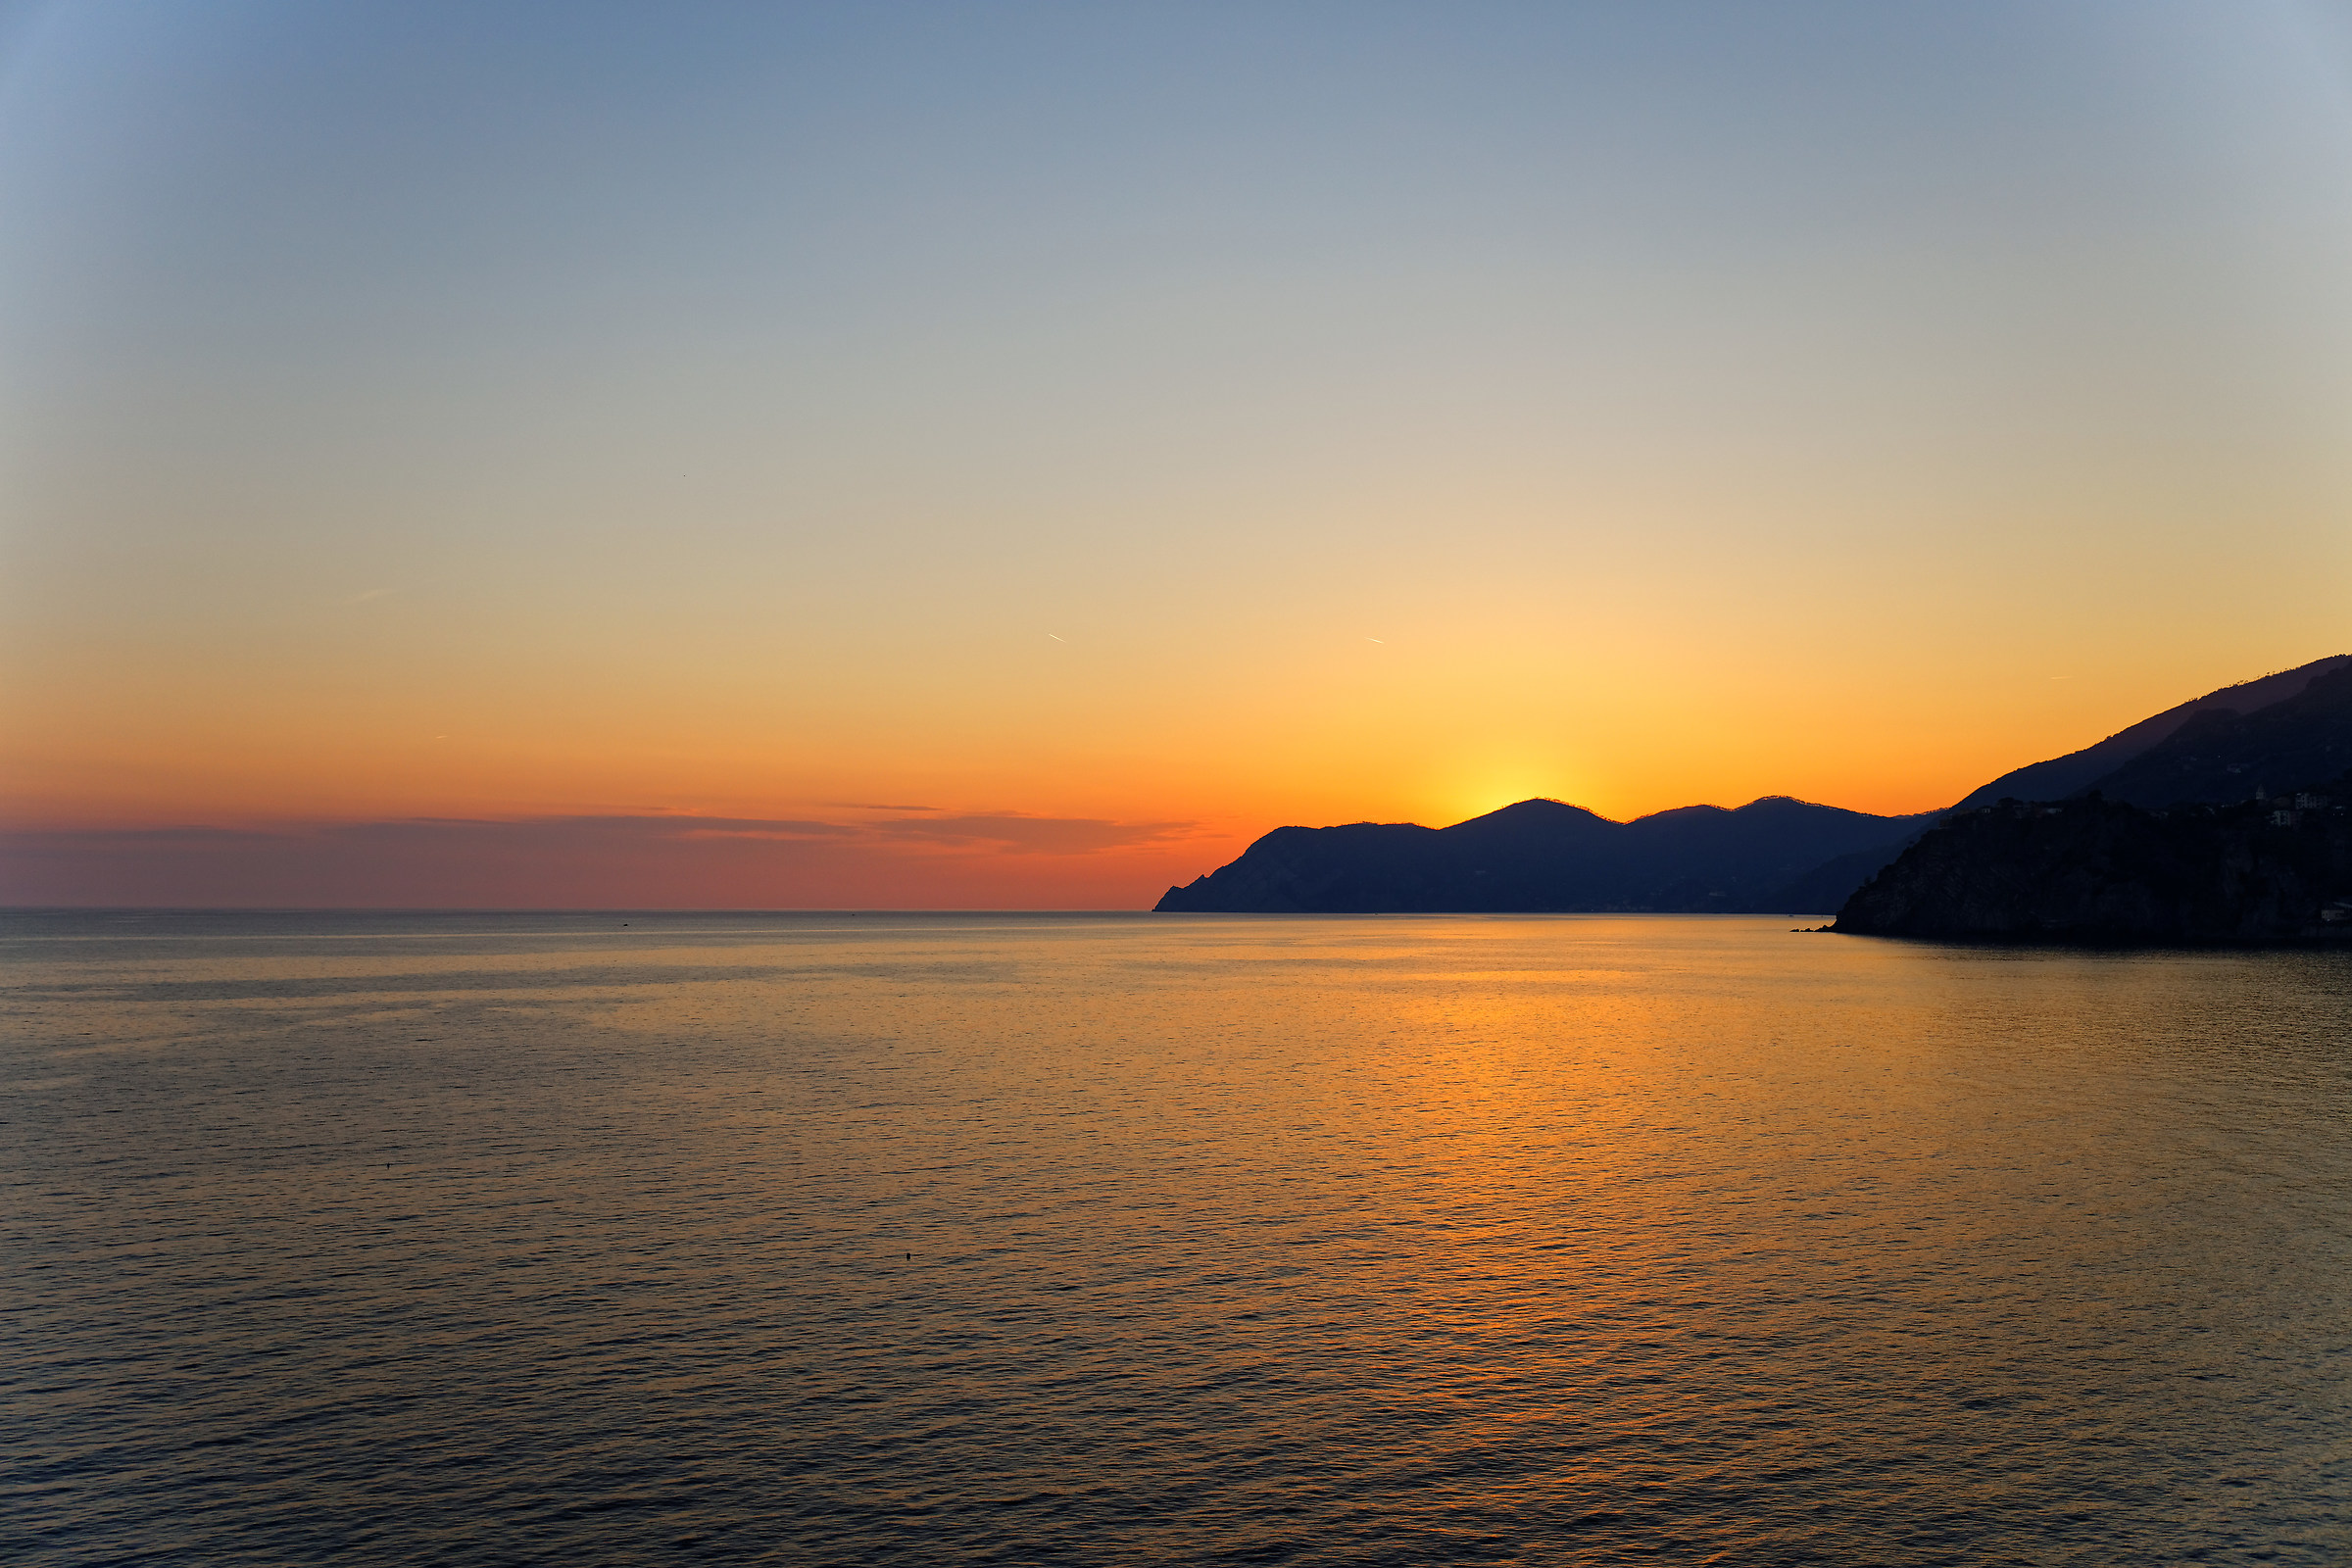 Sunset over the Cinque Terre...